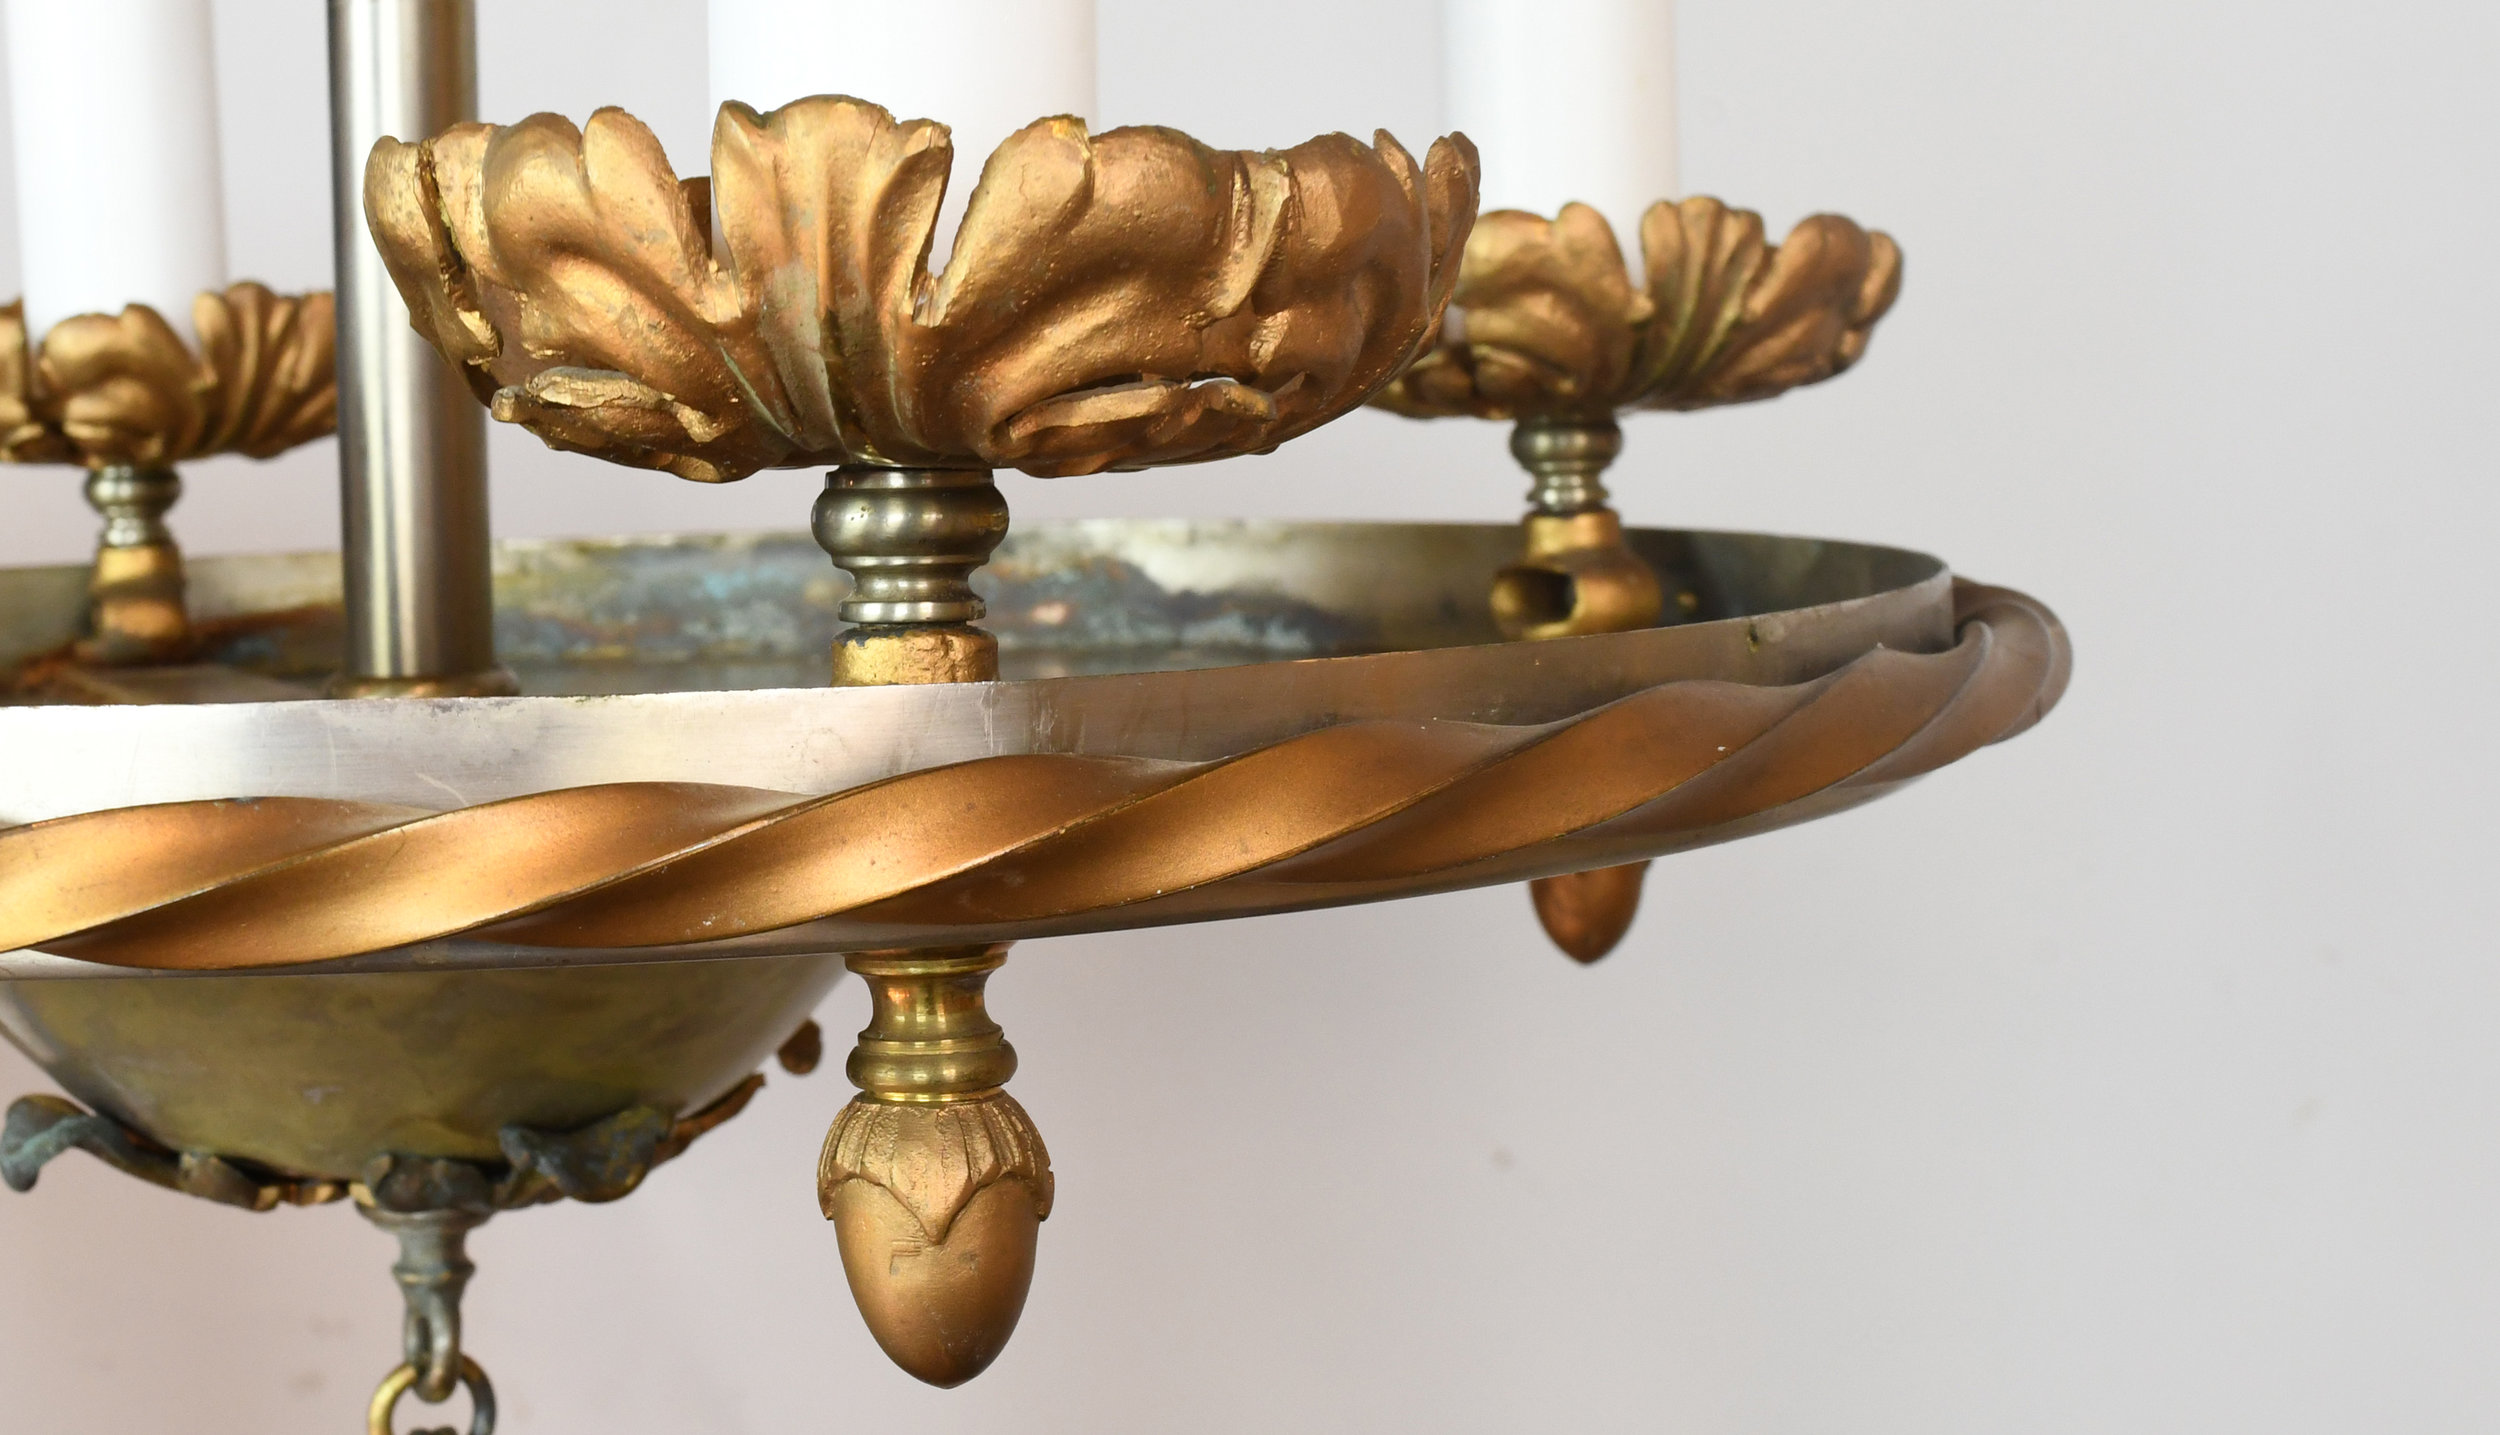 47420-4-candle-brass-gothic-chand-detail-15.jpg